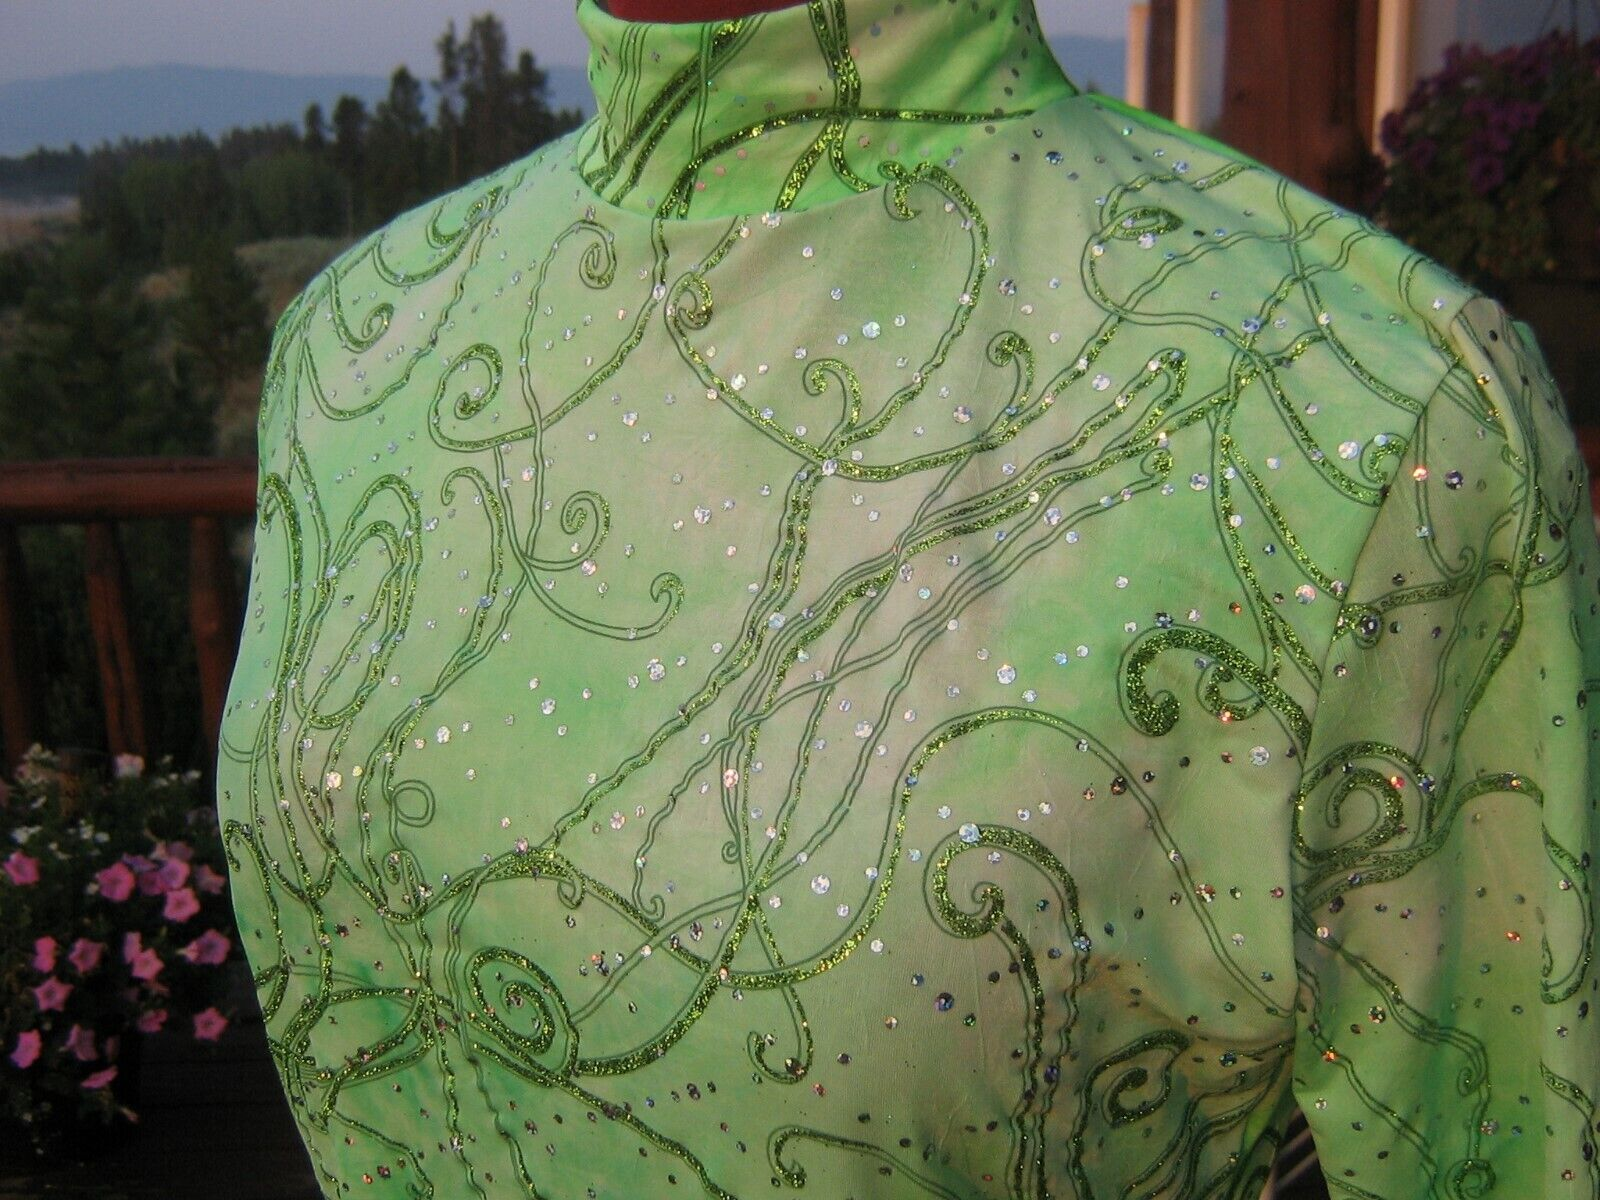 5 Girl sizes green tyedye shine western rail show shirt leadline, xs S M L xl